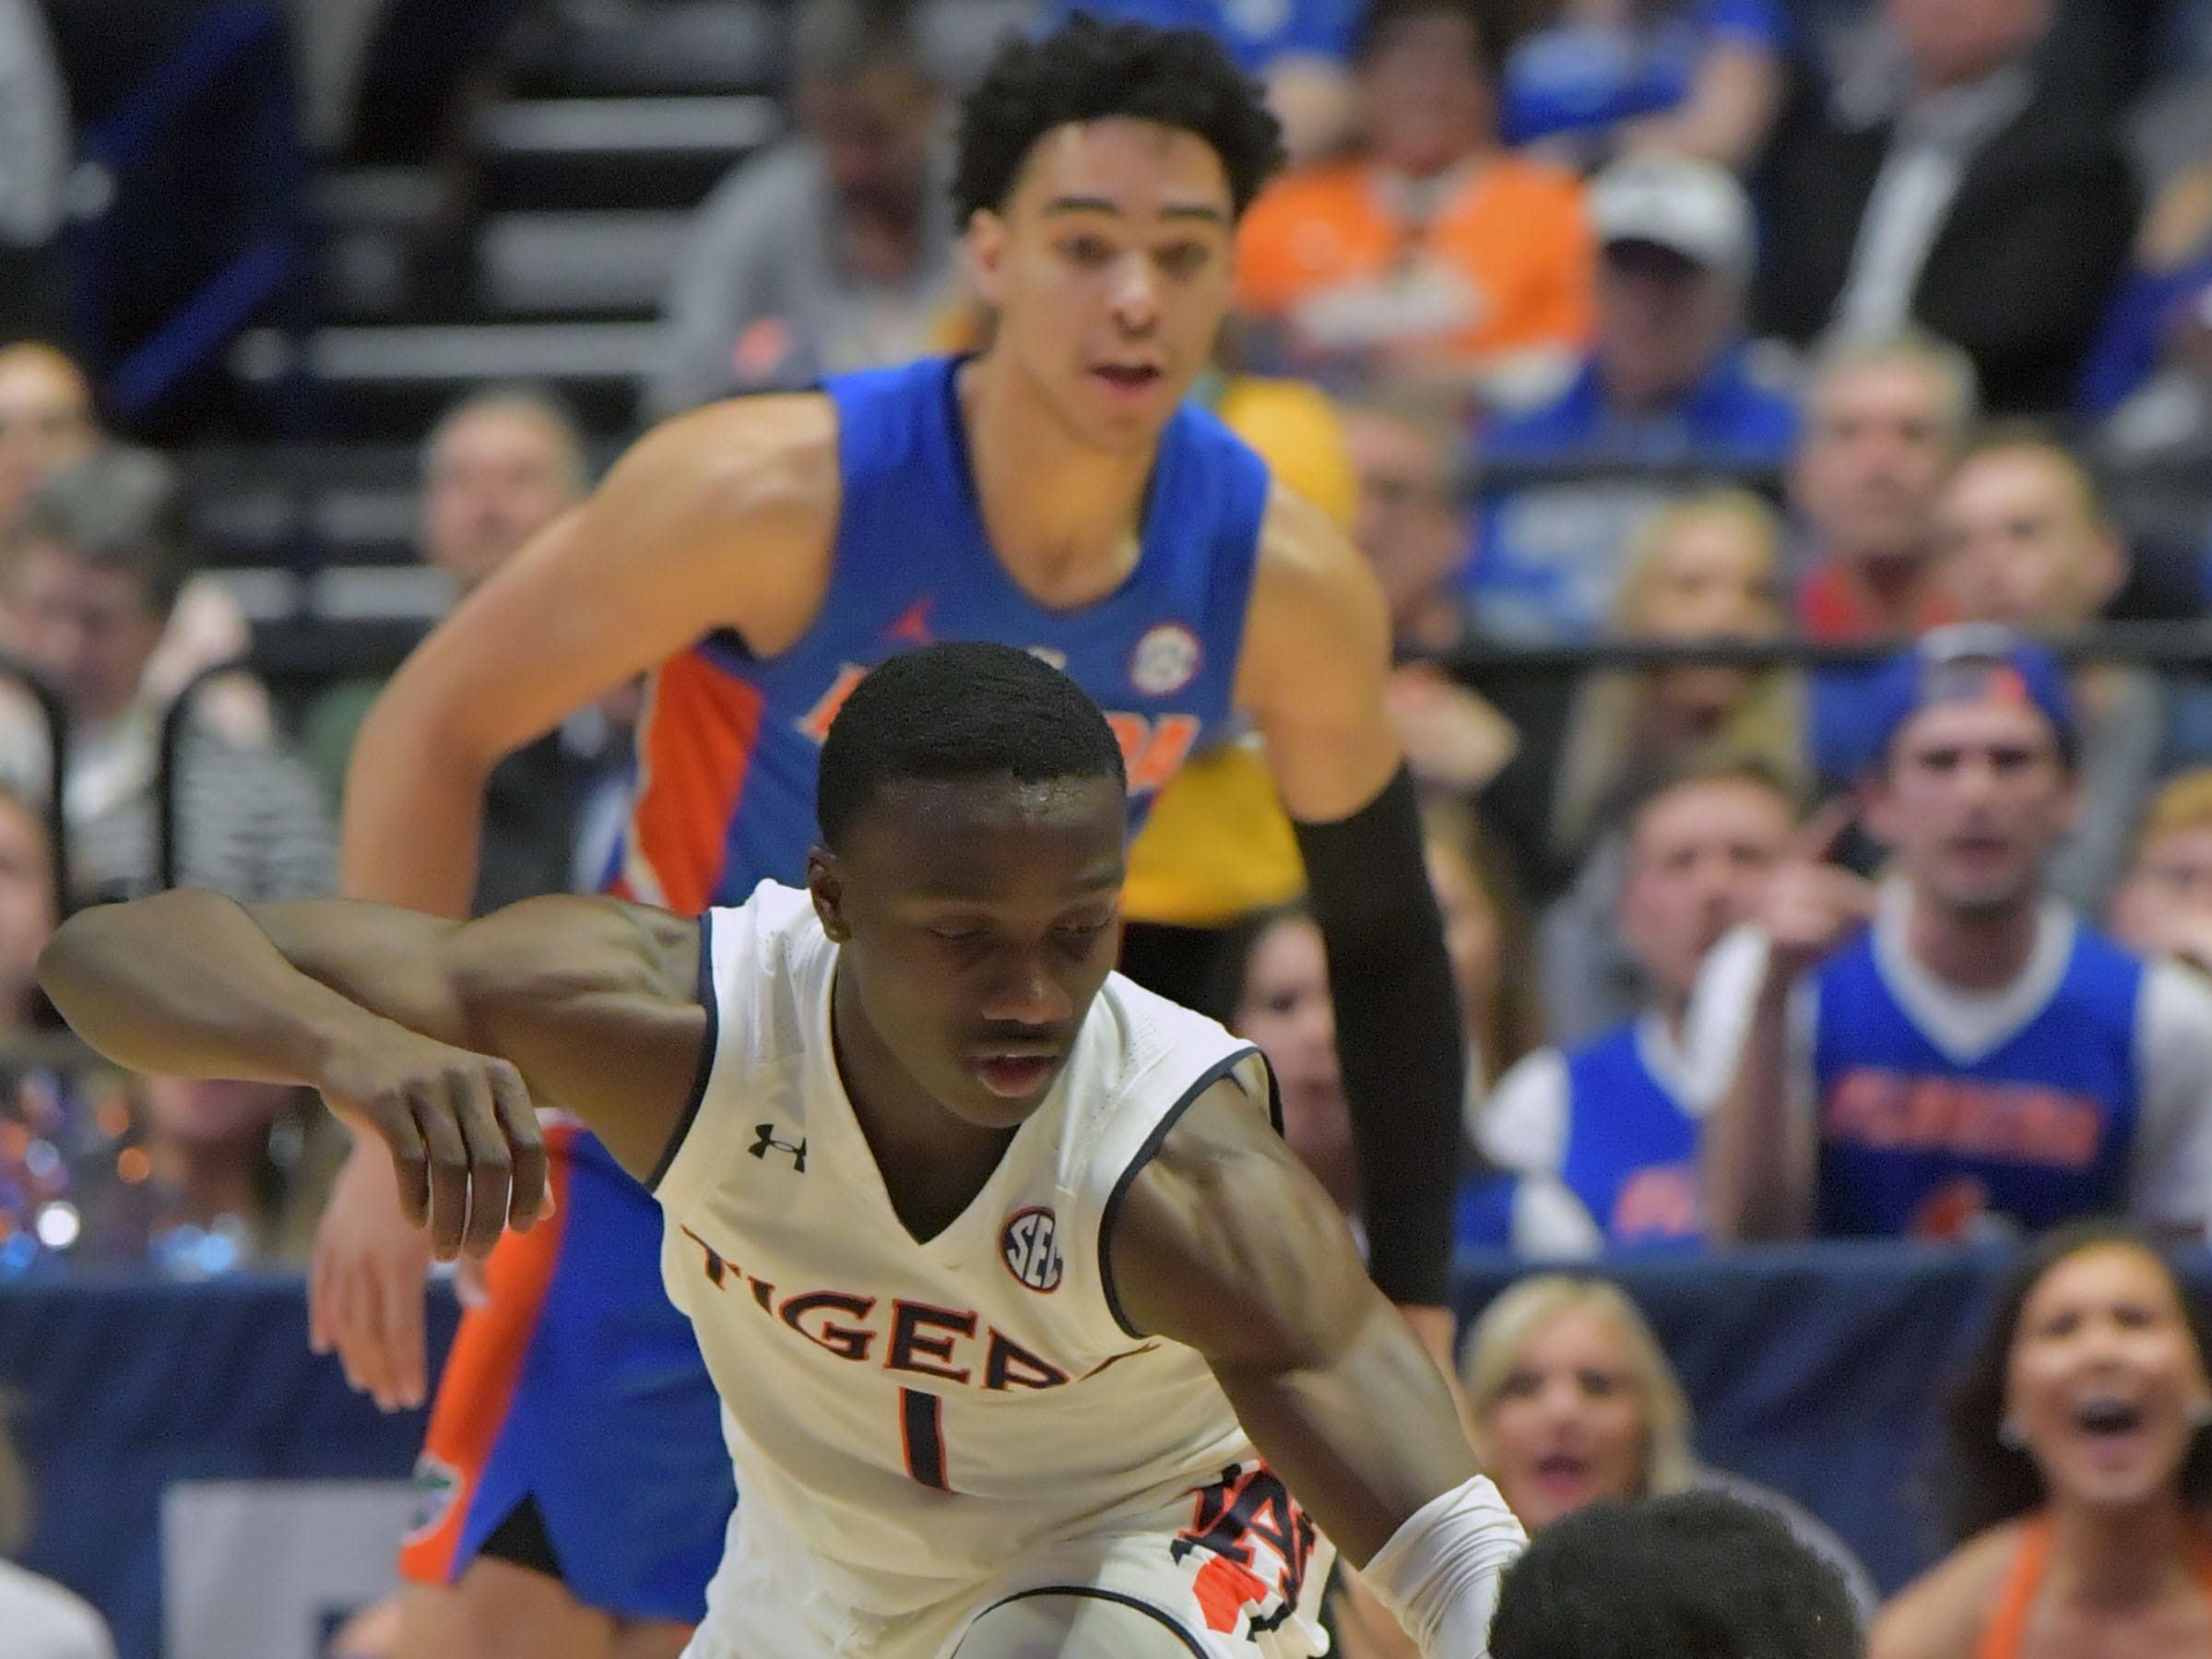 Mar 16, 2019; Nashville, TN, USA; Florida Gators guard KeVaughn Allen (5) dives for the loose ball against Auburn Tigers guard Jared Harper (1) during the first half of game eleven in the SEC conference tournament at Bridgestone Arena. Mandatory Credit: Jim Brown-USA TODAY Sports